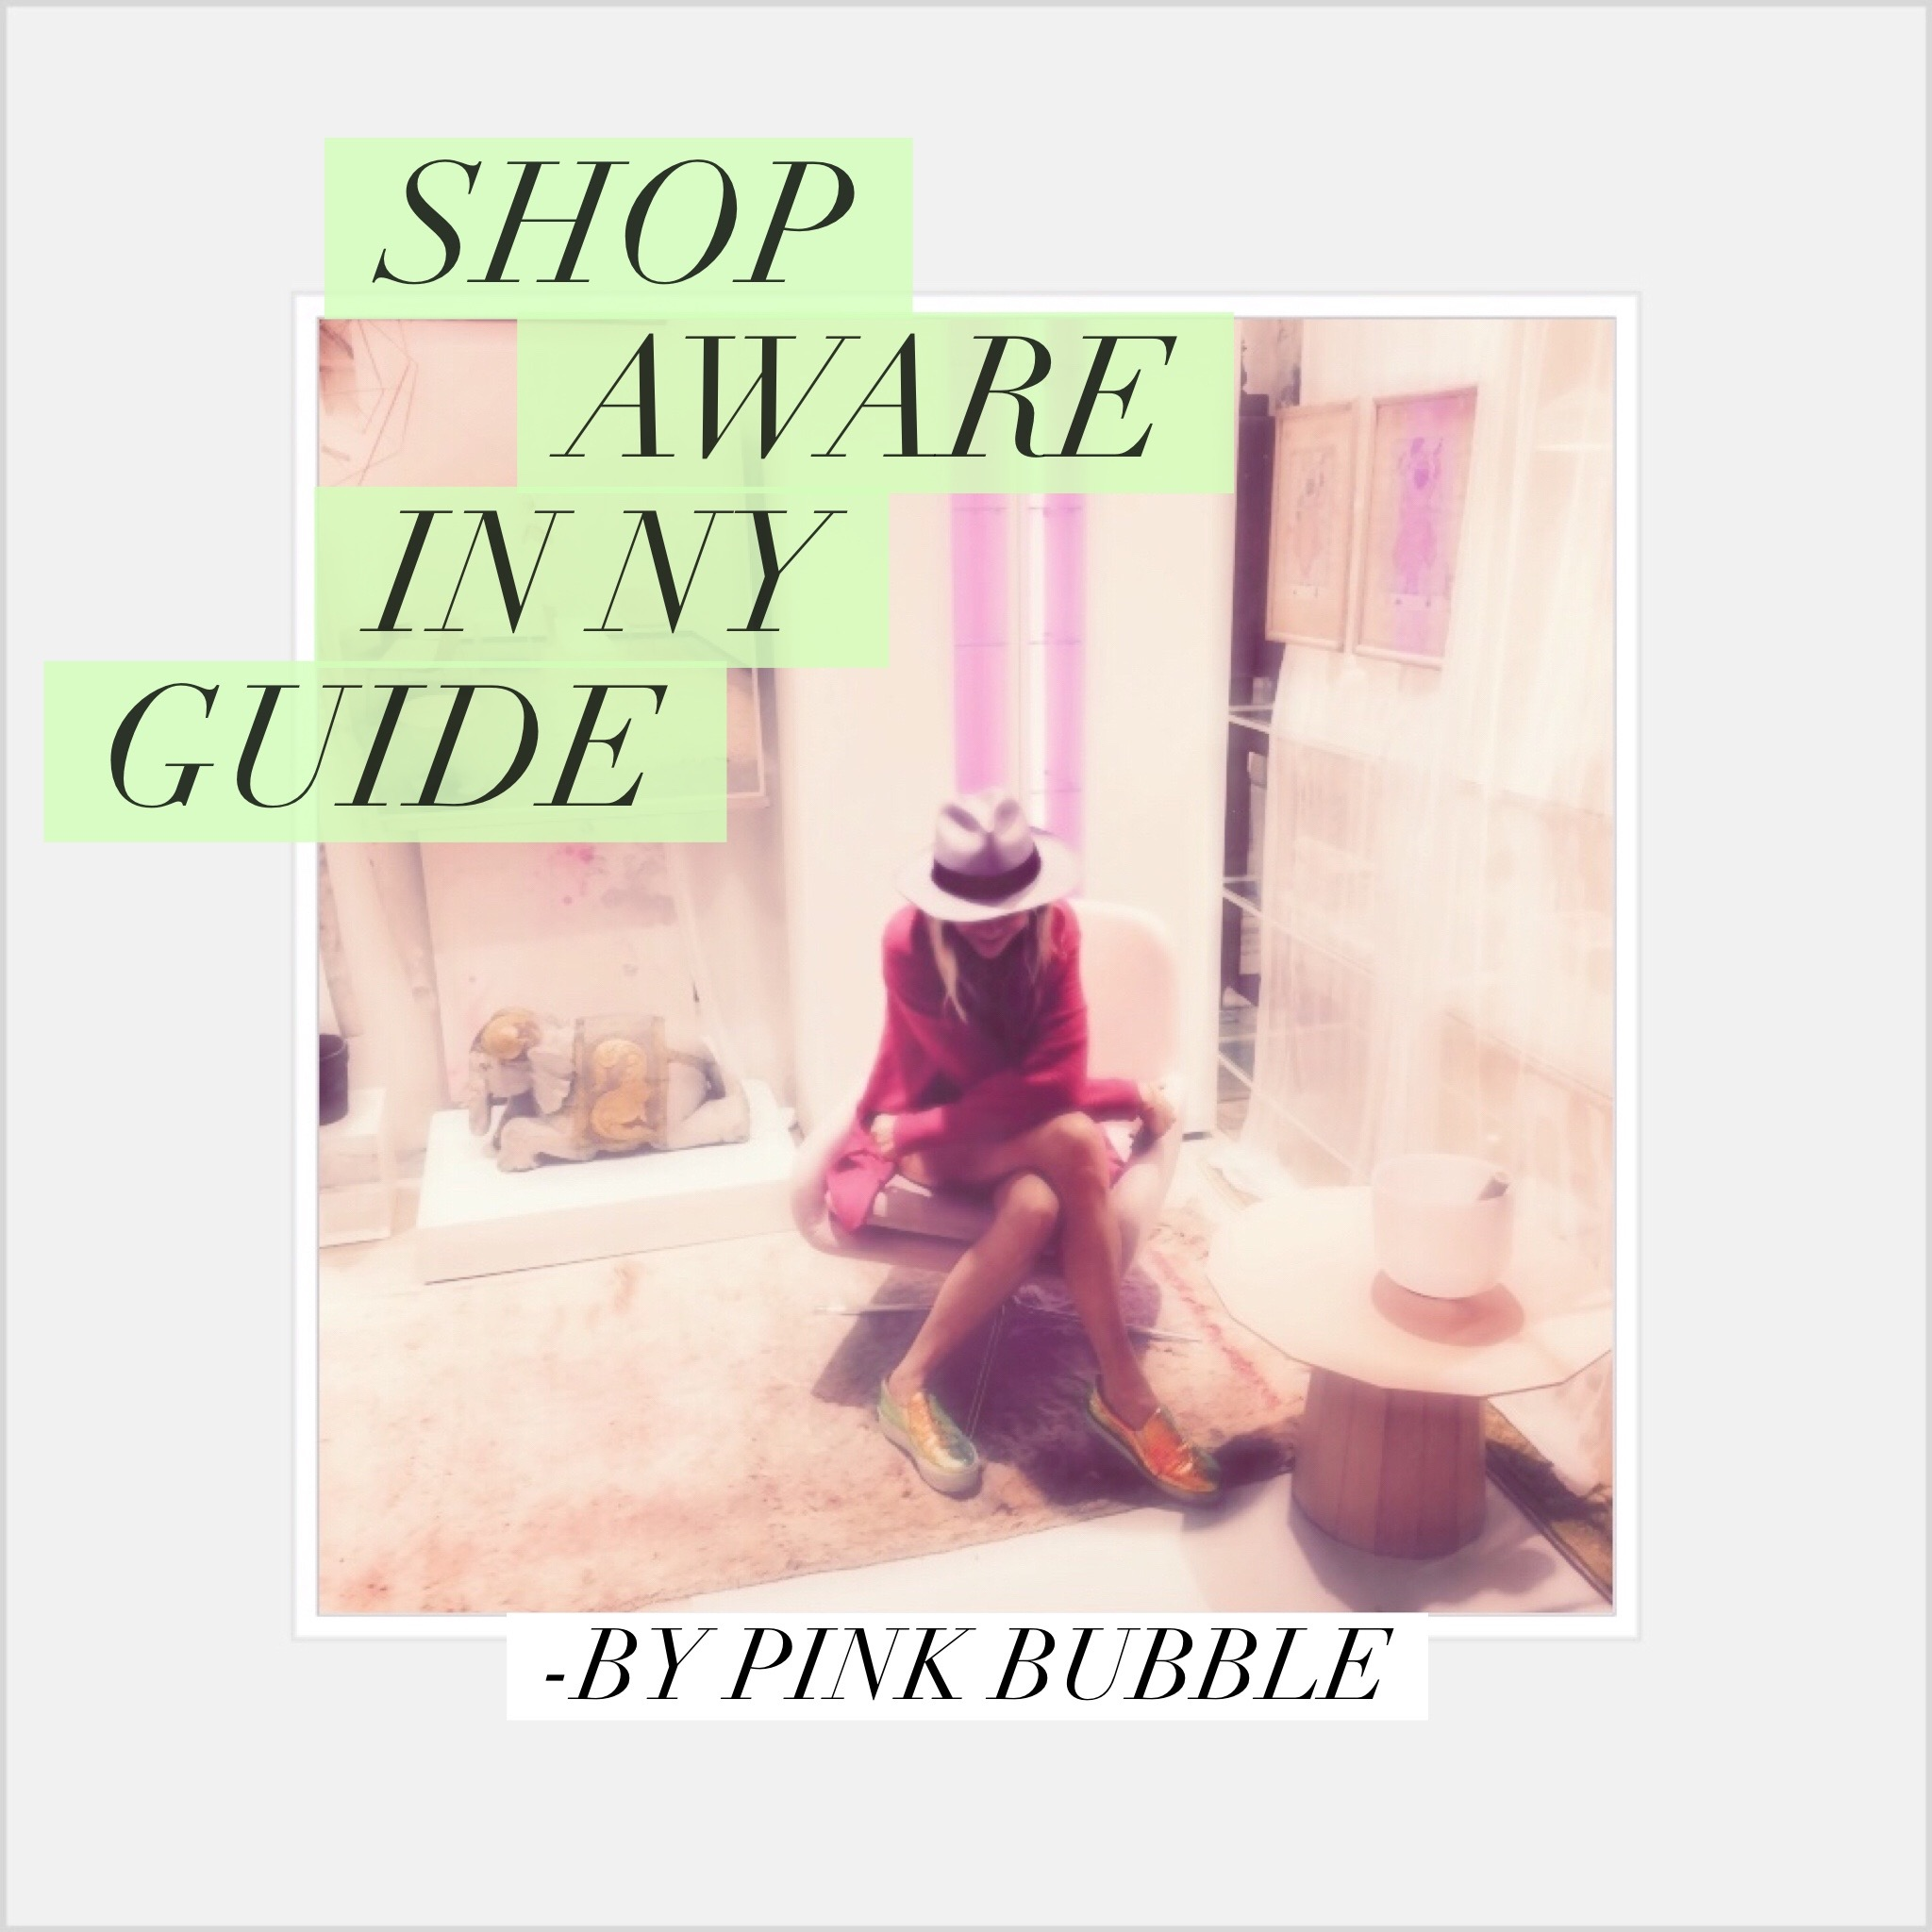 Shop aware in NY GUIDE by PInk Bubble